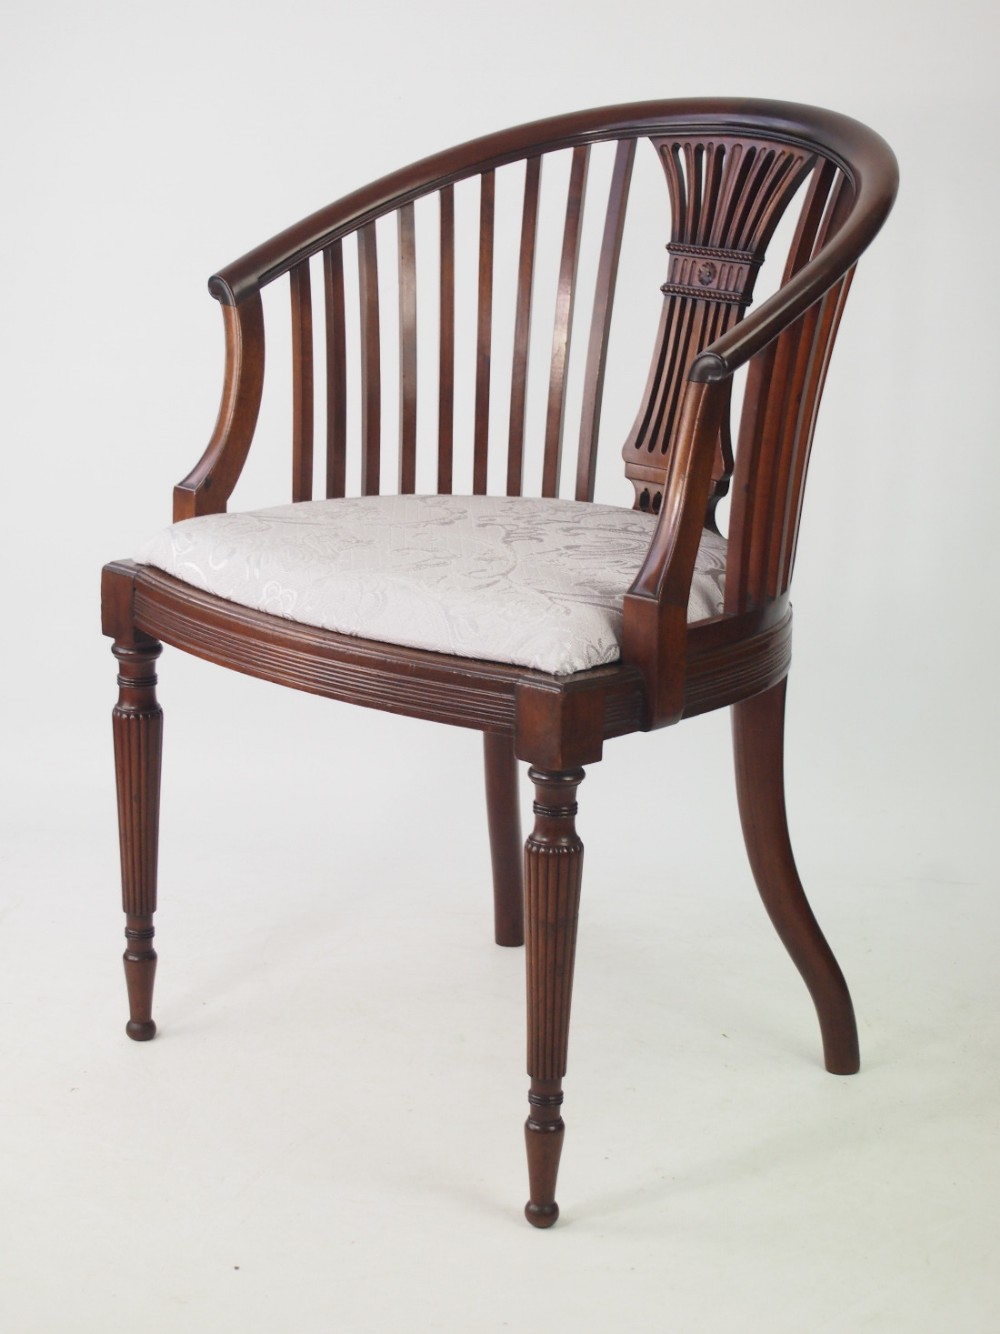 Edwardian Mahogany Tub Chair 436875